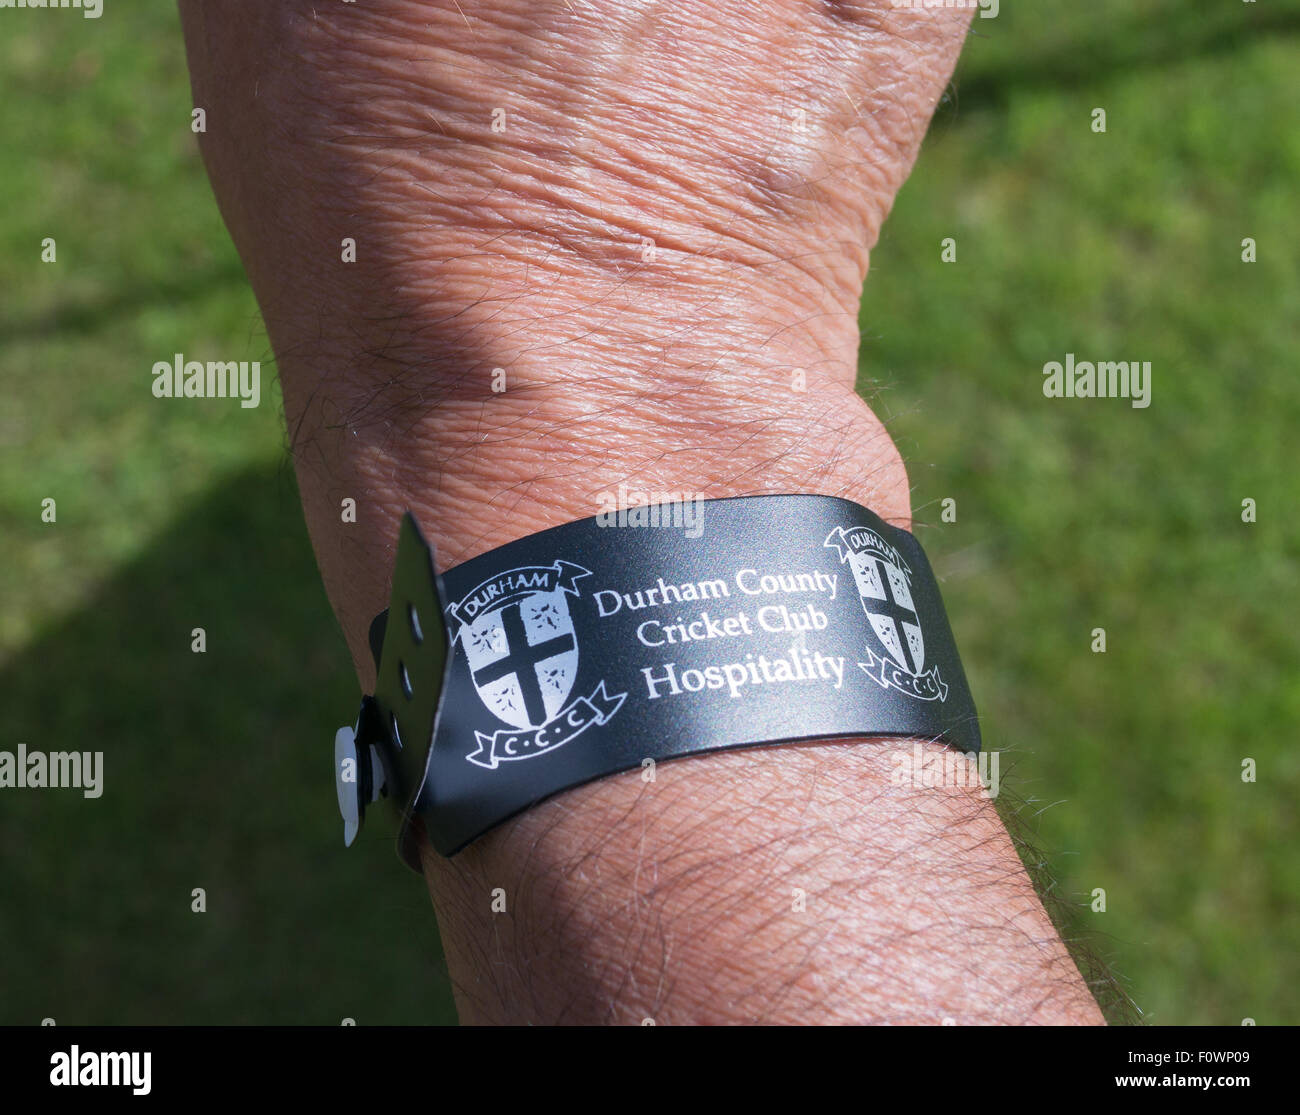 A man's forearm wearing a Durham County Cricket Club Hospitality wristband. - Stock Image